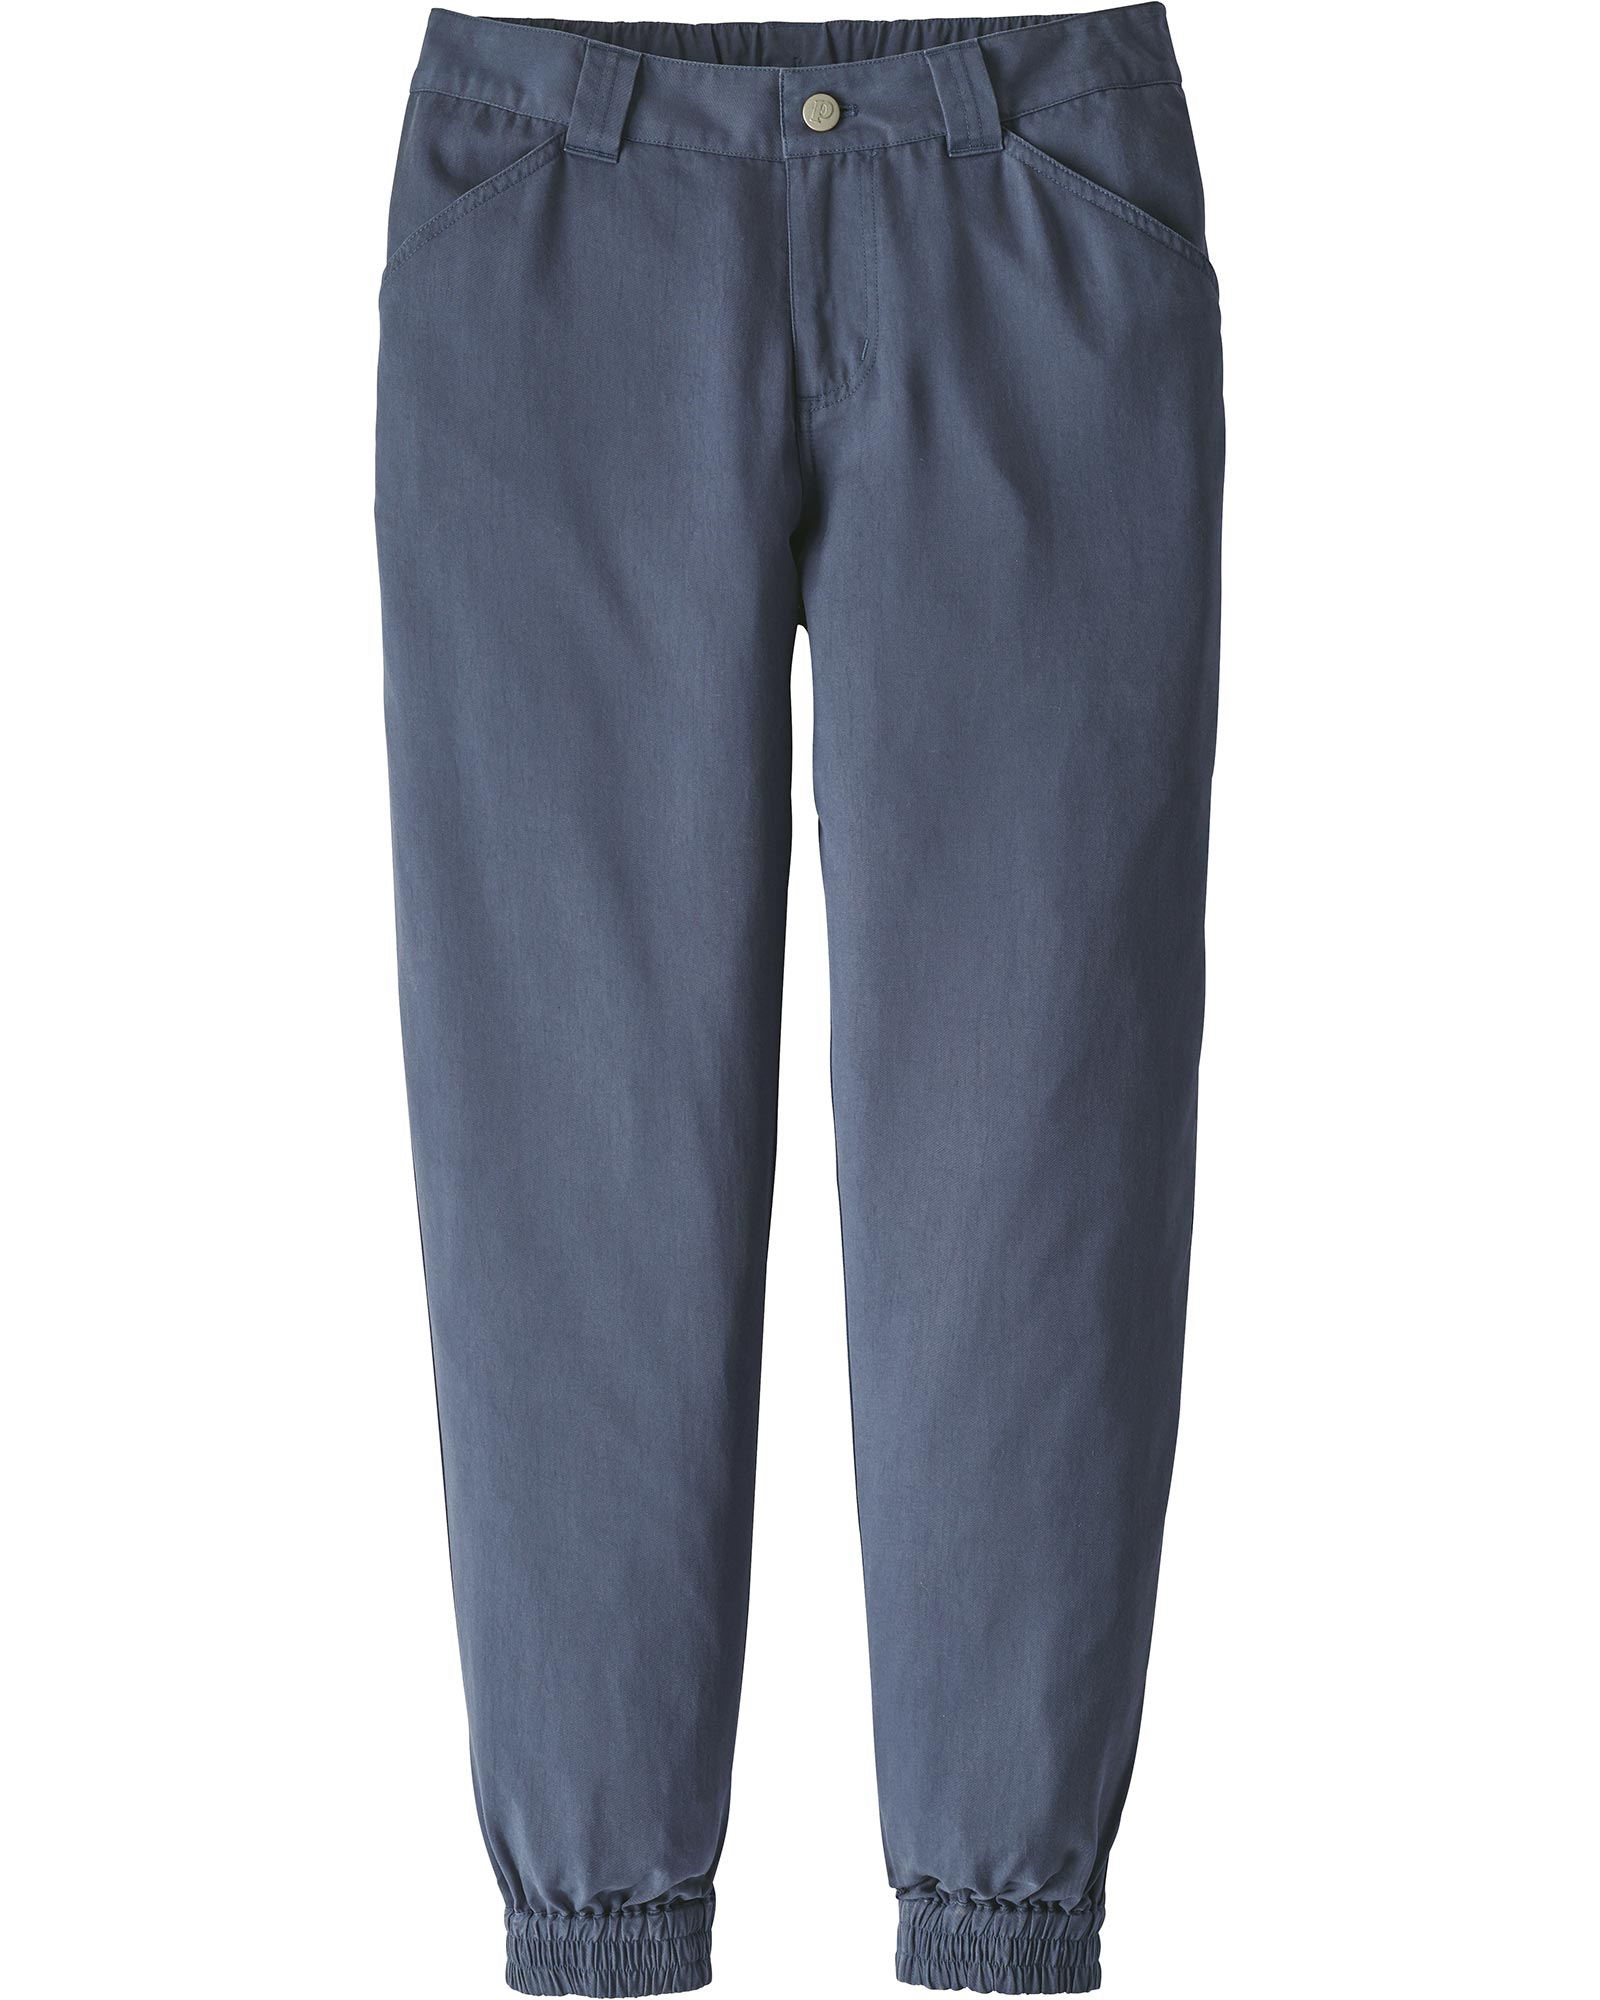 Patagonia Women's Edge Win Joggers 0